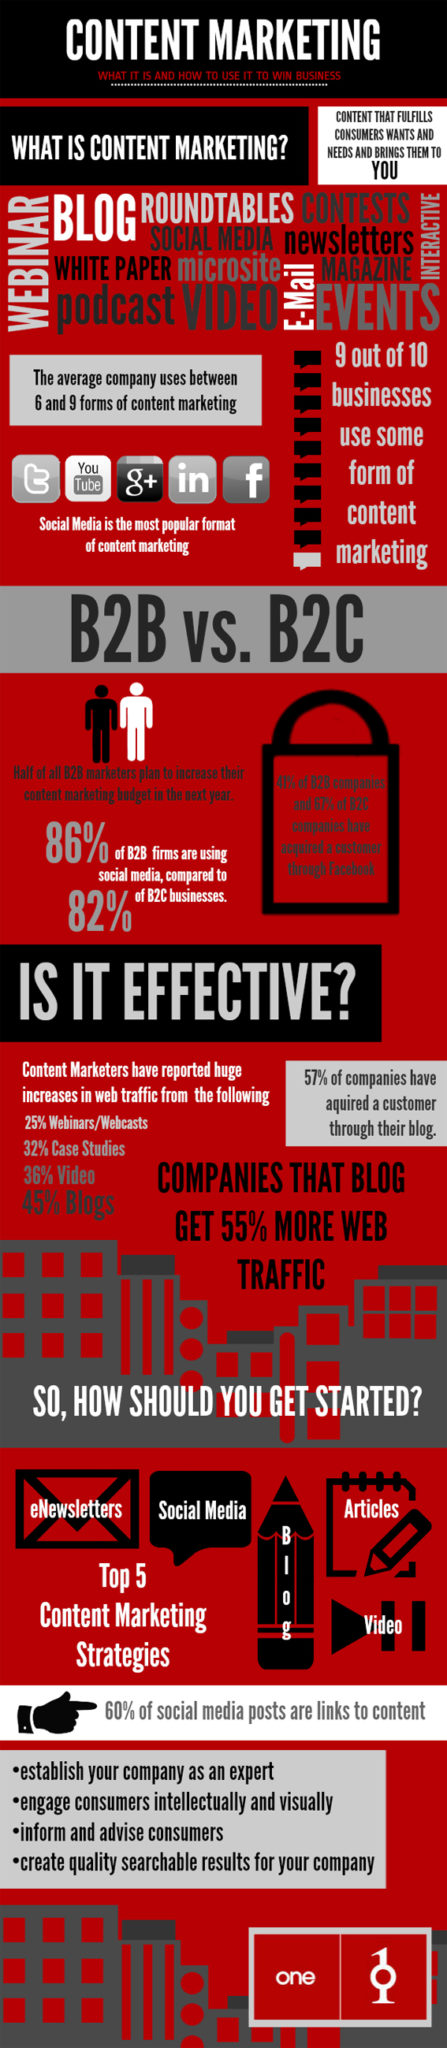 Content-Marketing-Business-Infographic